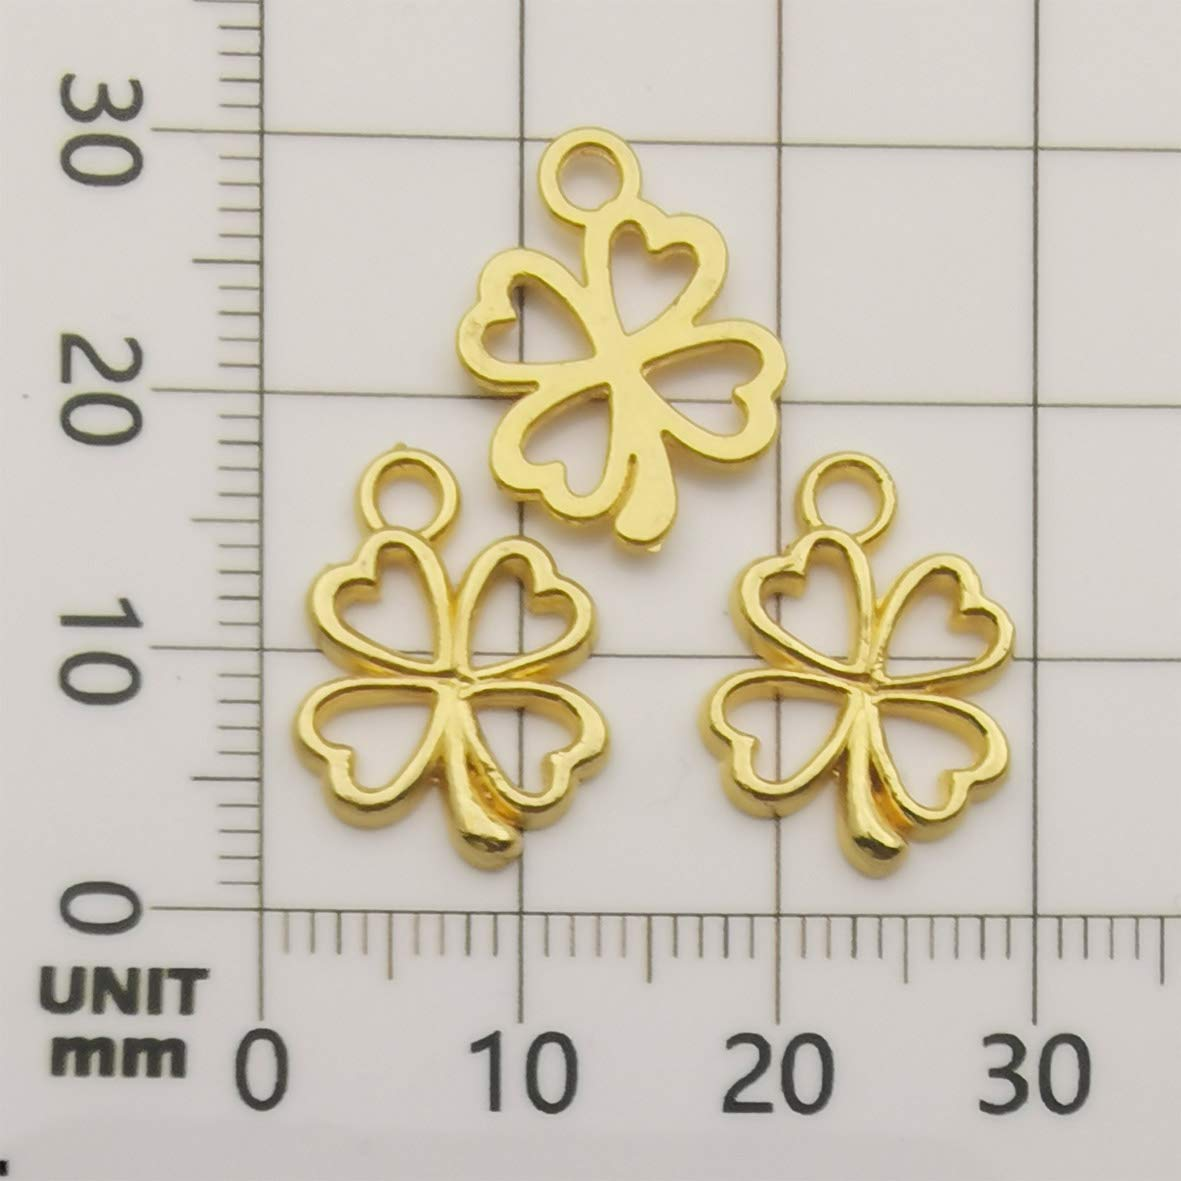 Antique Bronze Tone Jewelry Making Charms Lucky Connector Square Crafting Craft